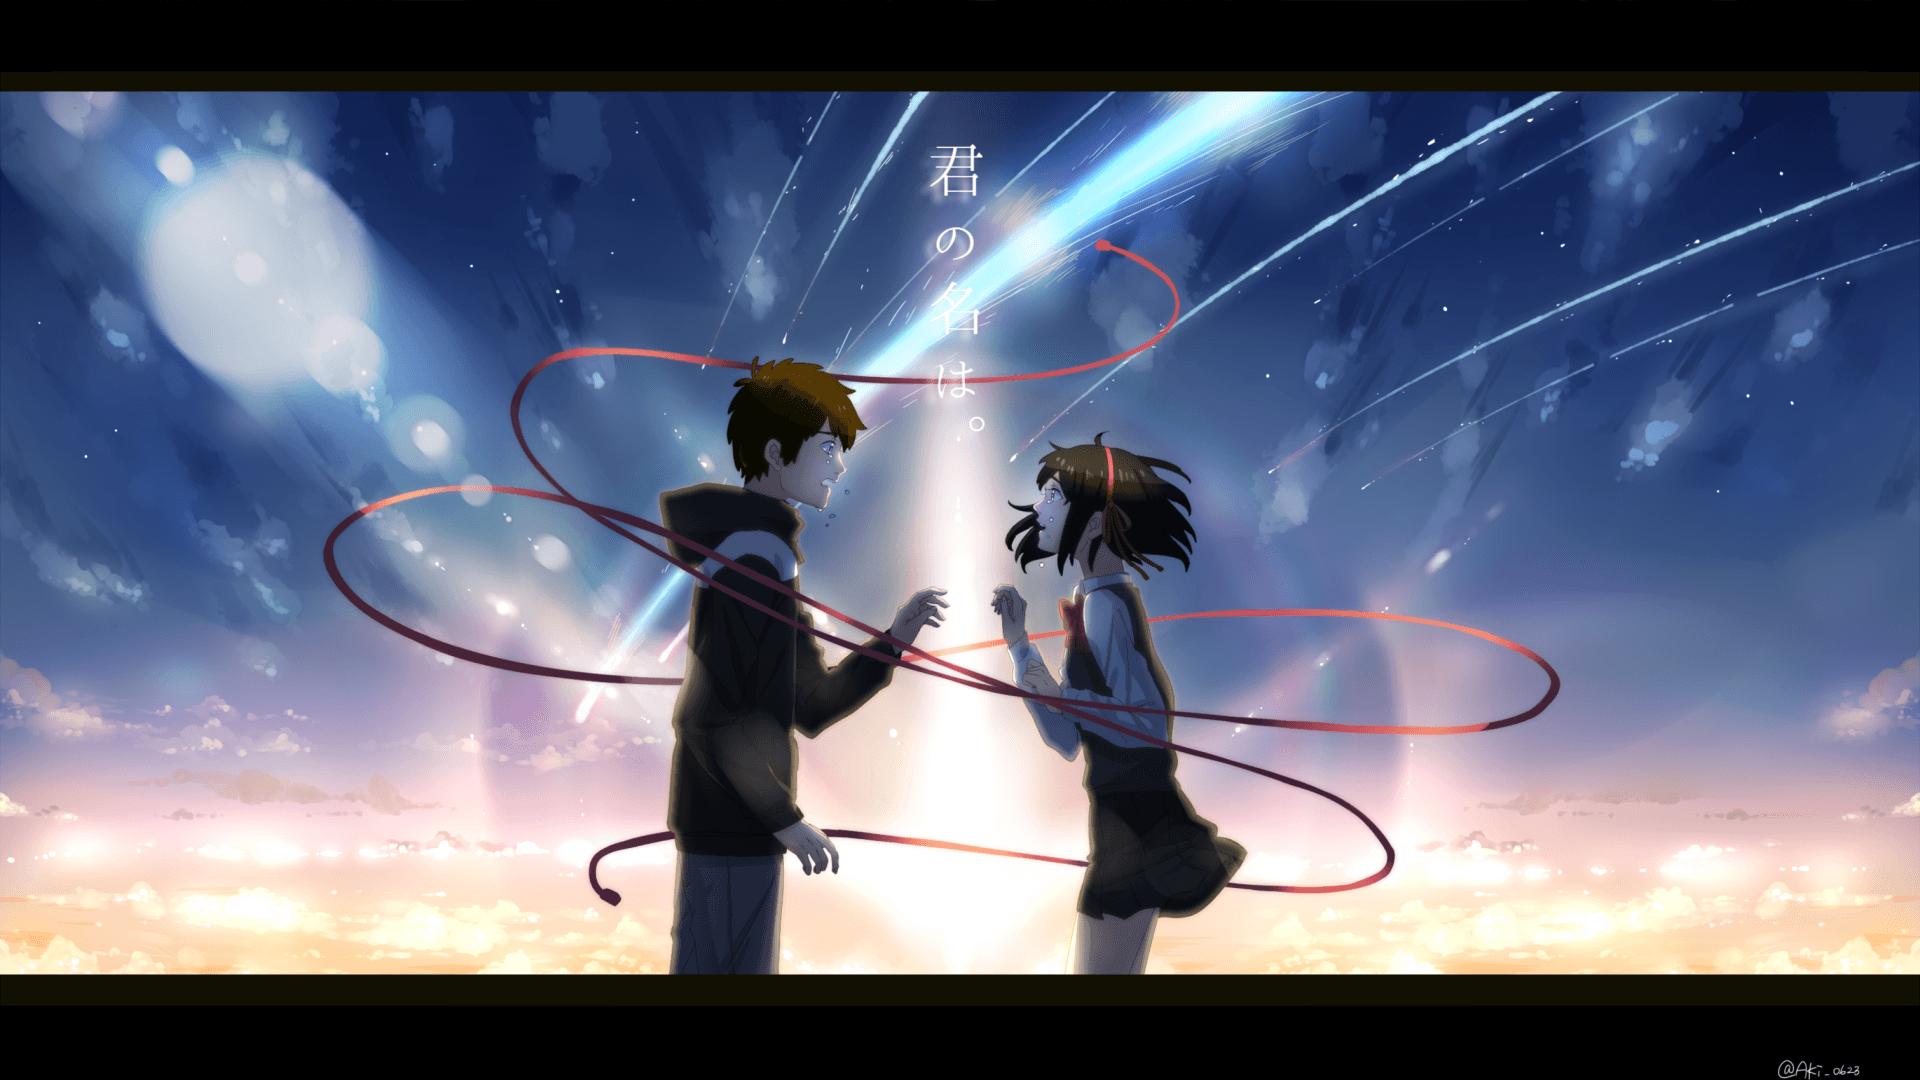 55 Best Free Your Name Anime Wallpapers Wallpaperaccess